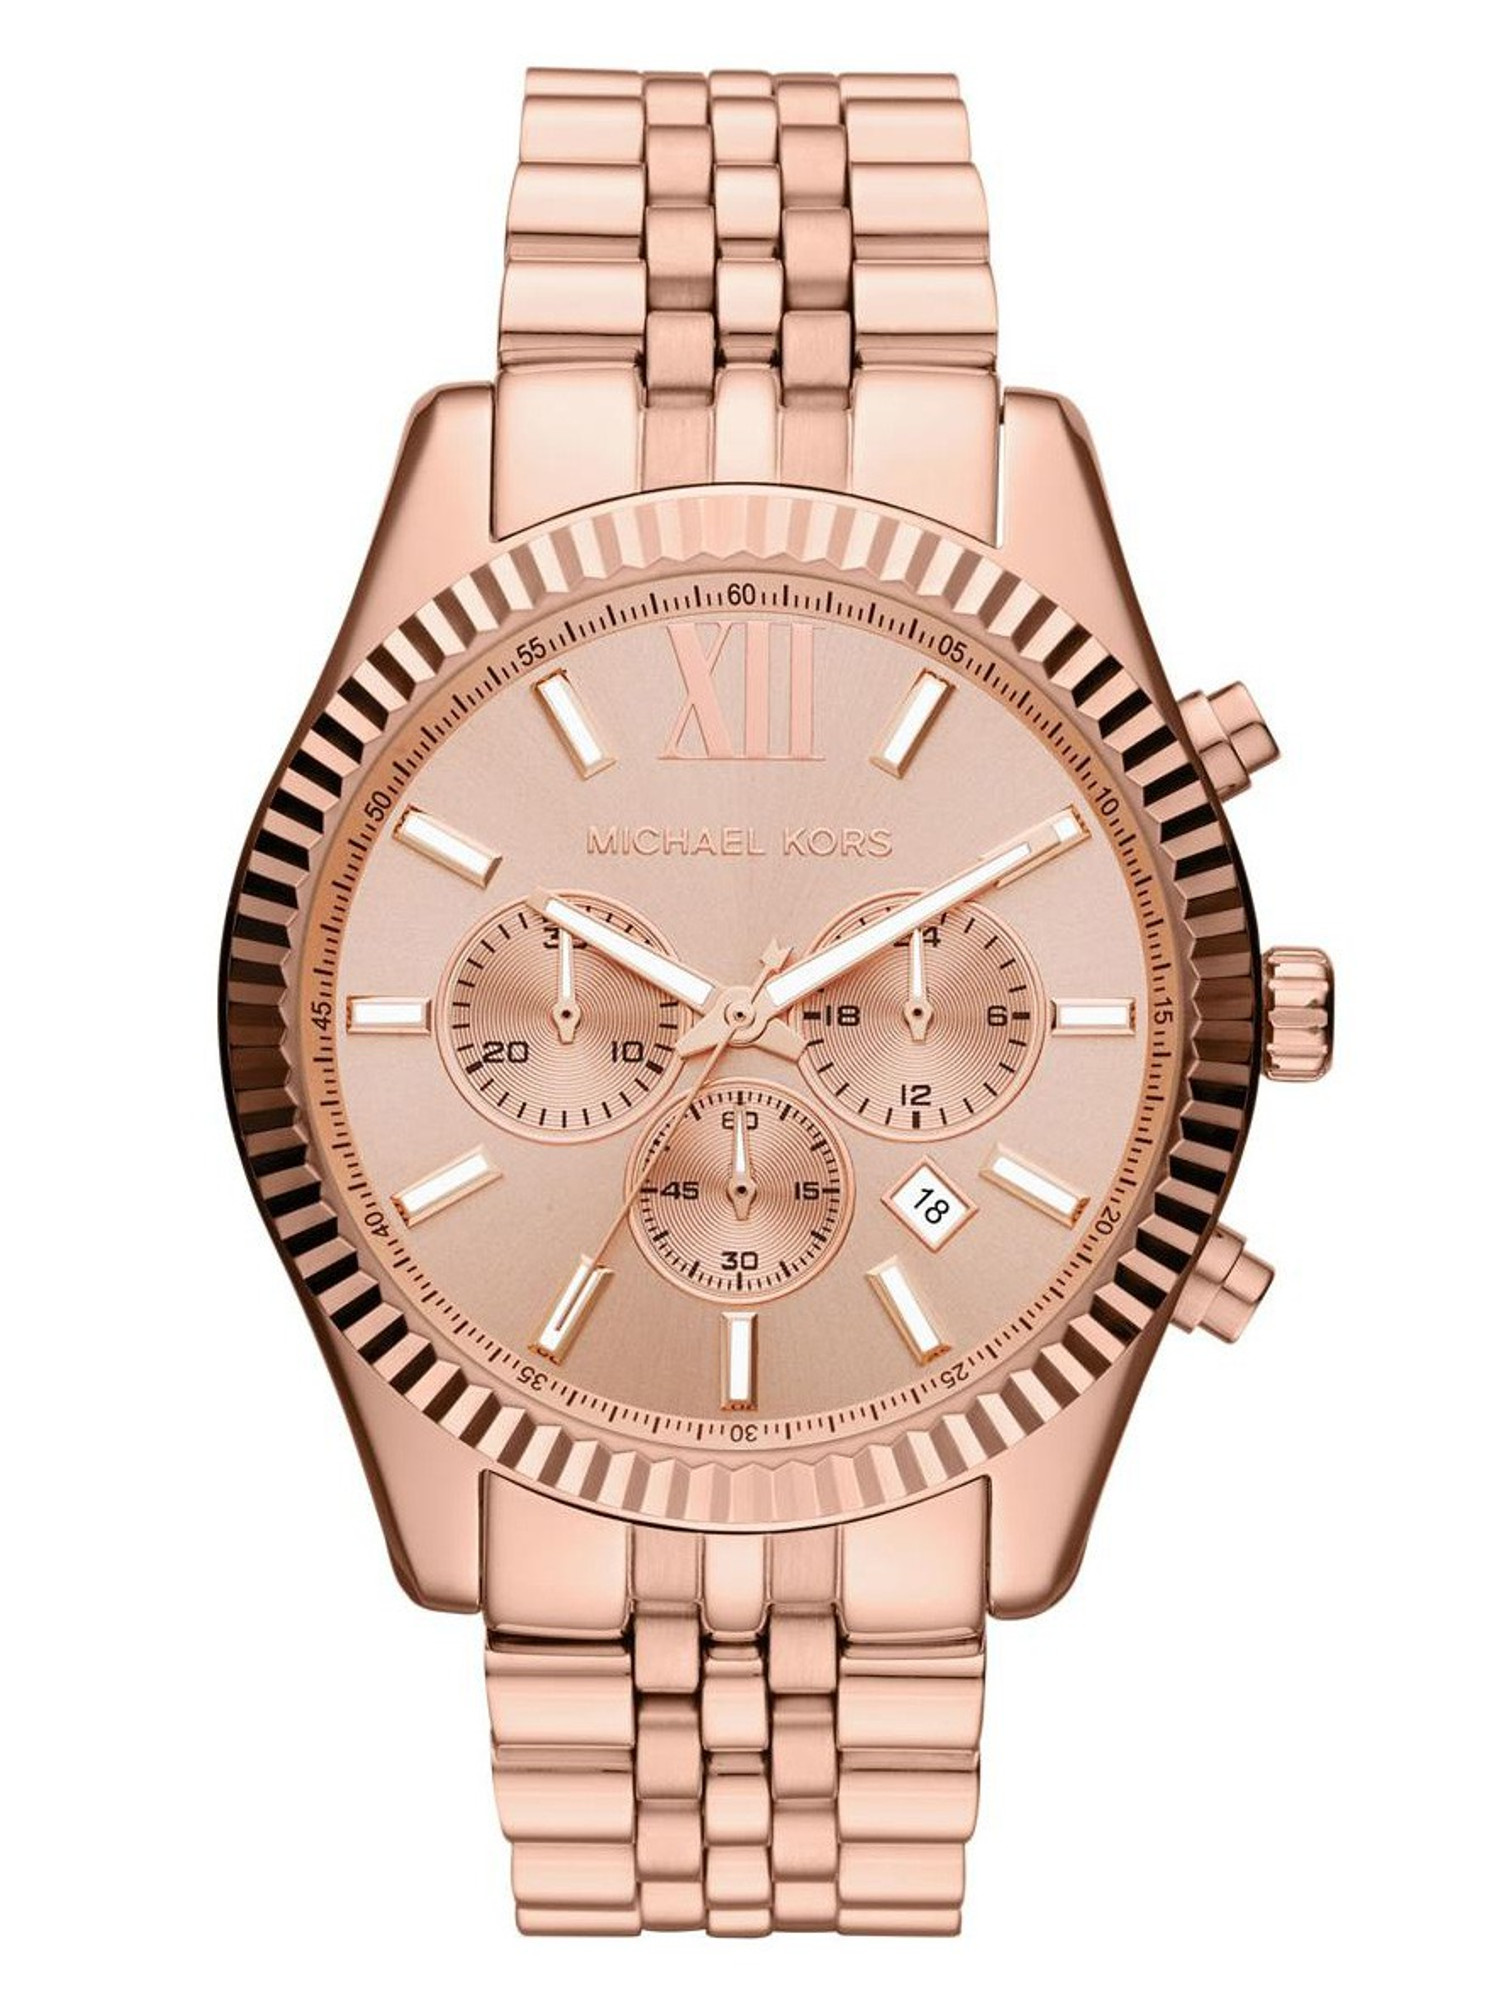 MICHAEL KORS Lexington Chronograph MK8319